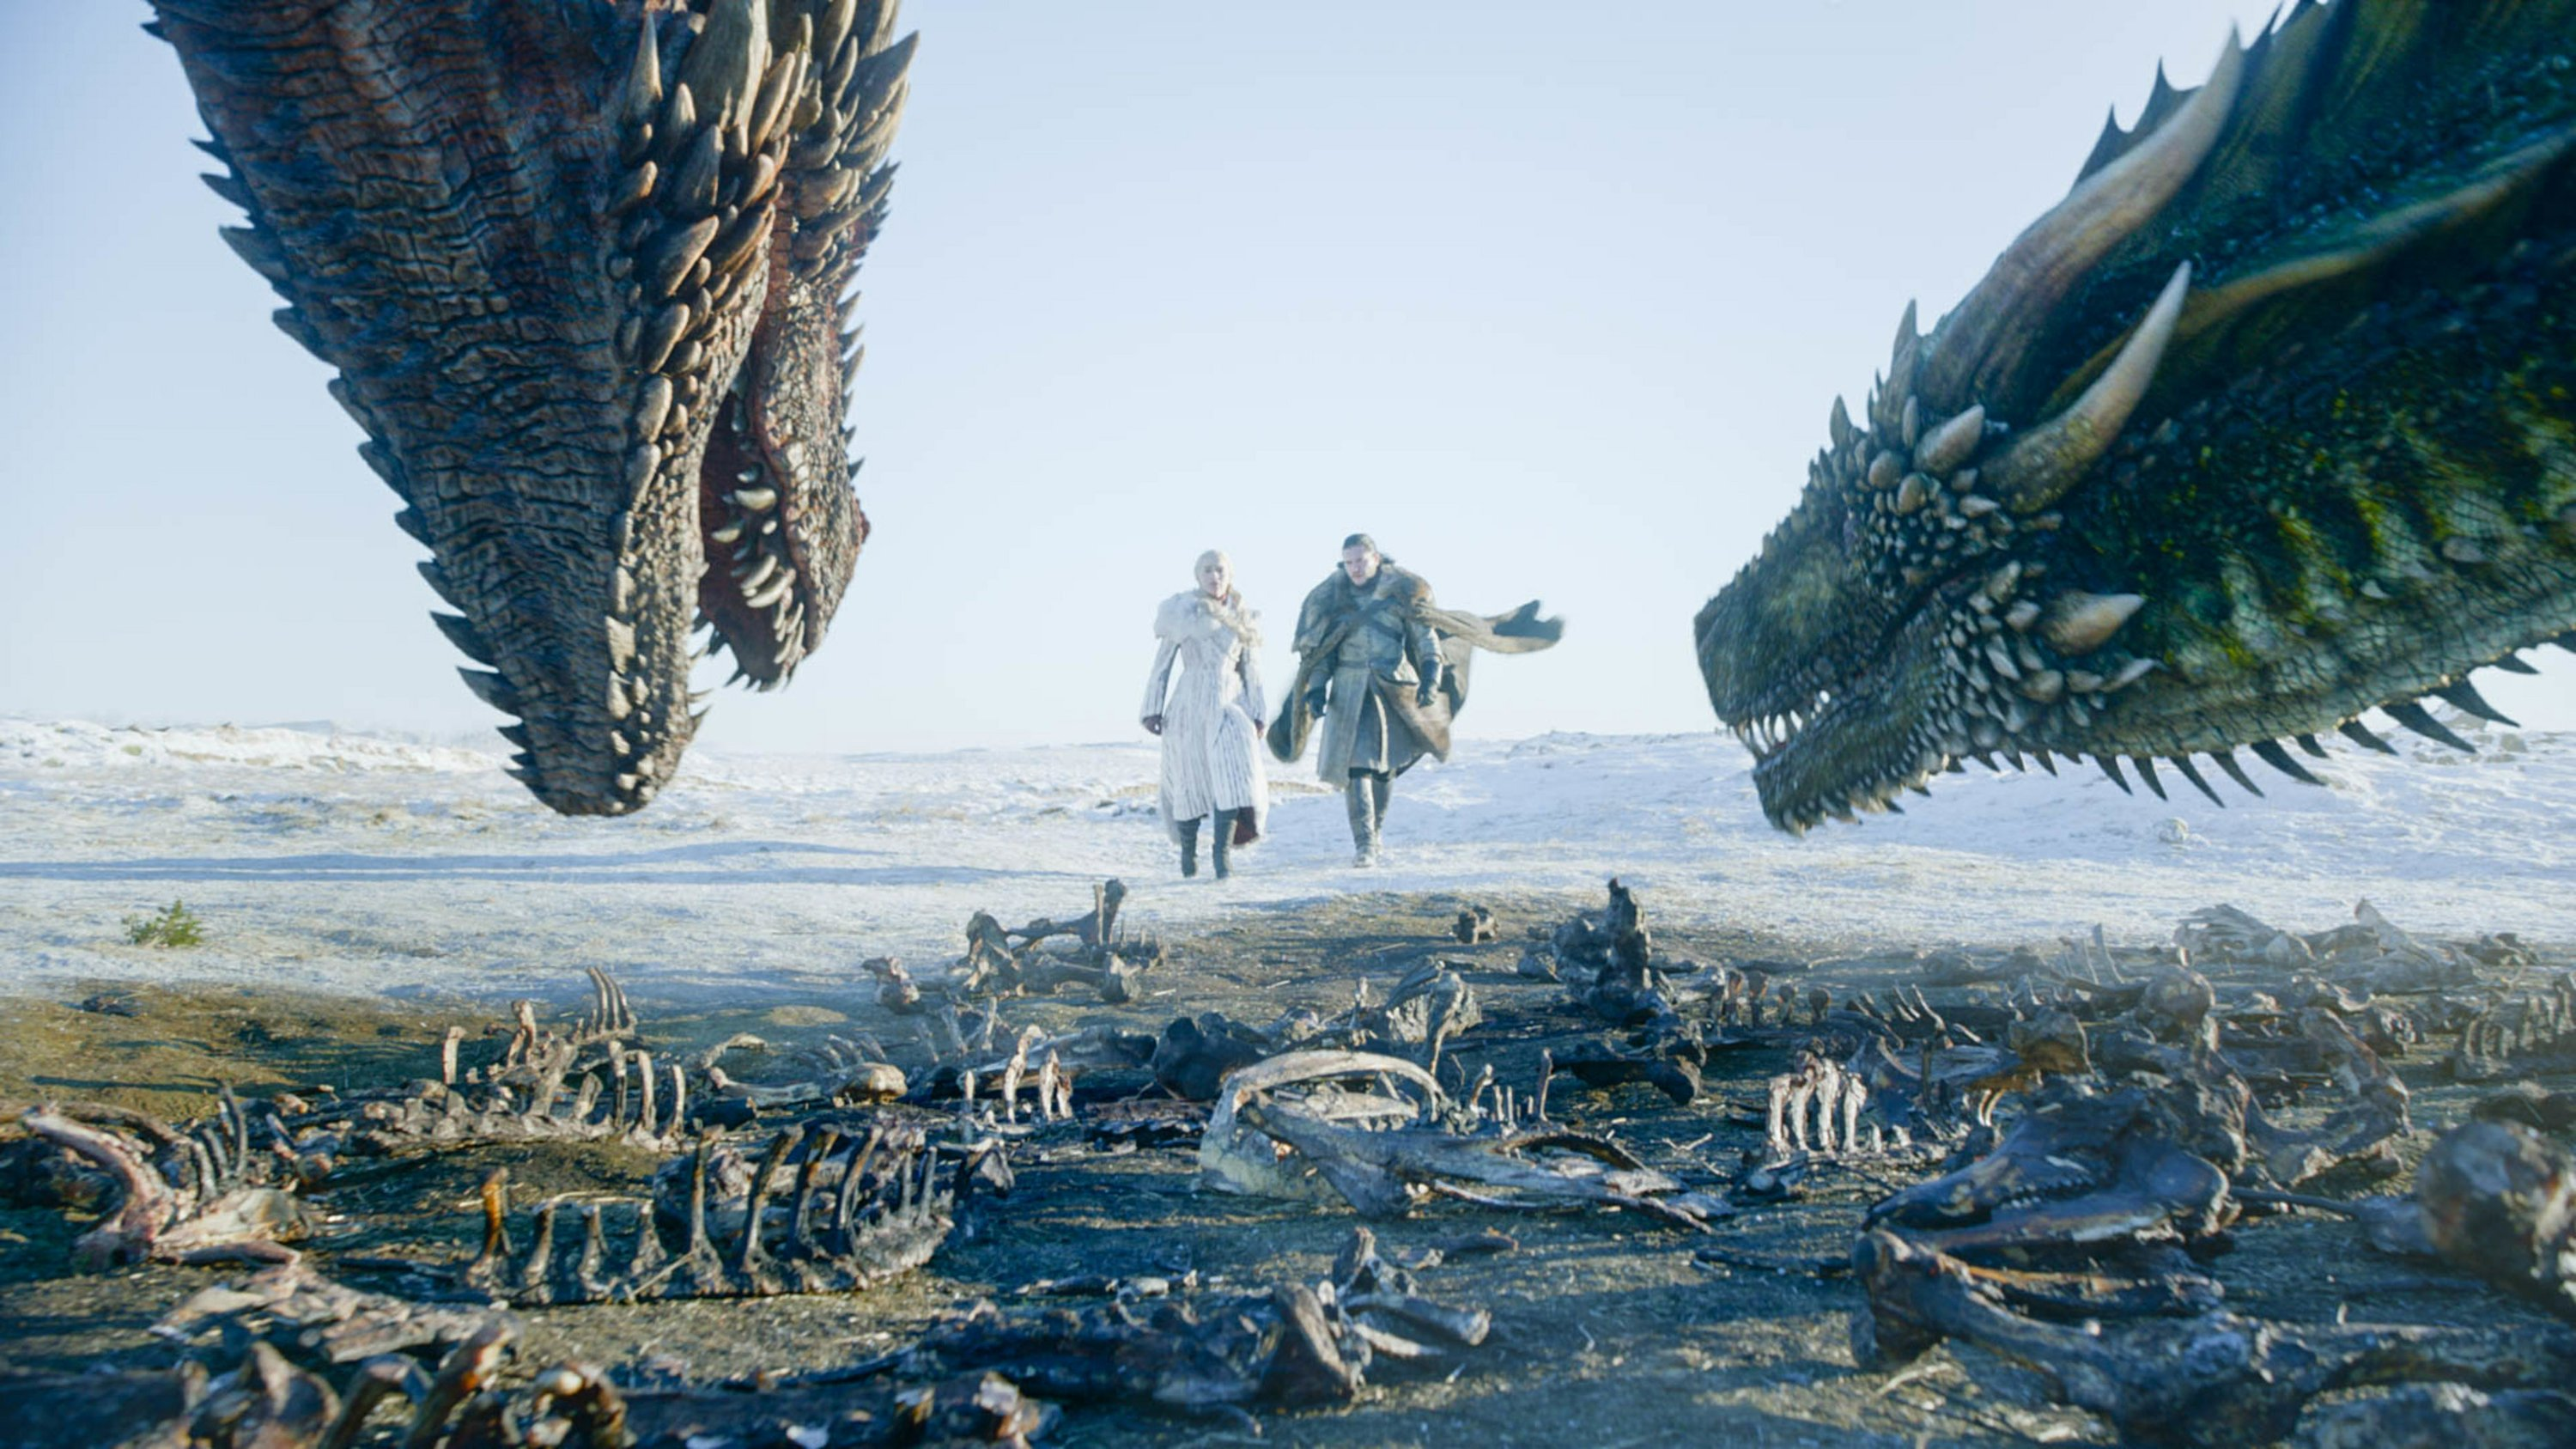 'Game of Thrones' earns a record-breaking 32 Emmy Award nods